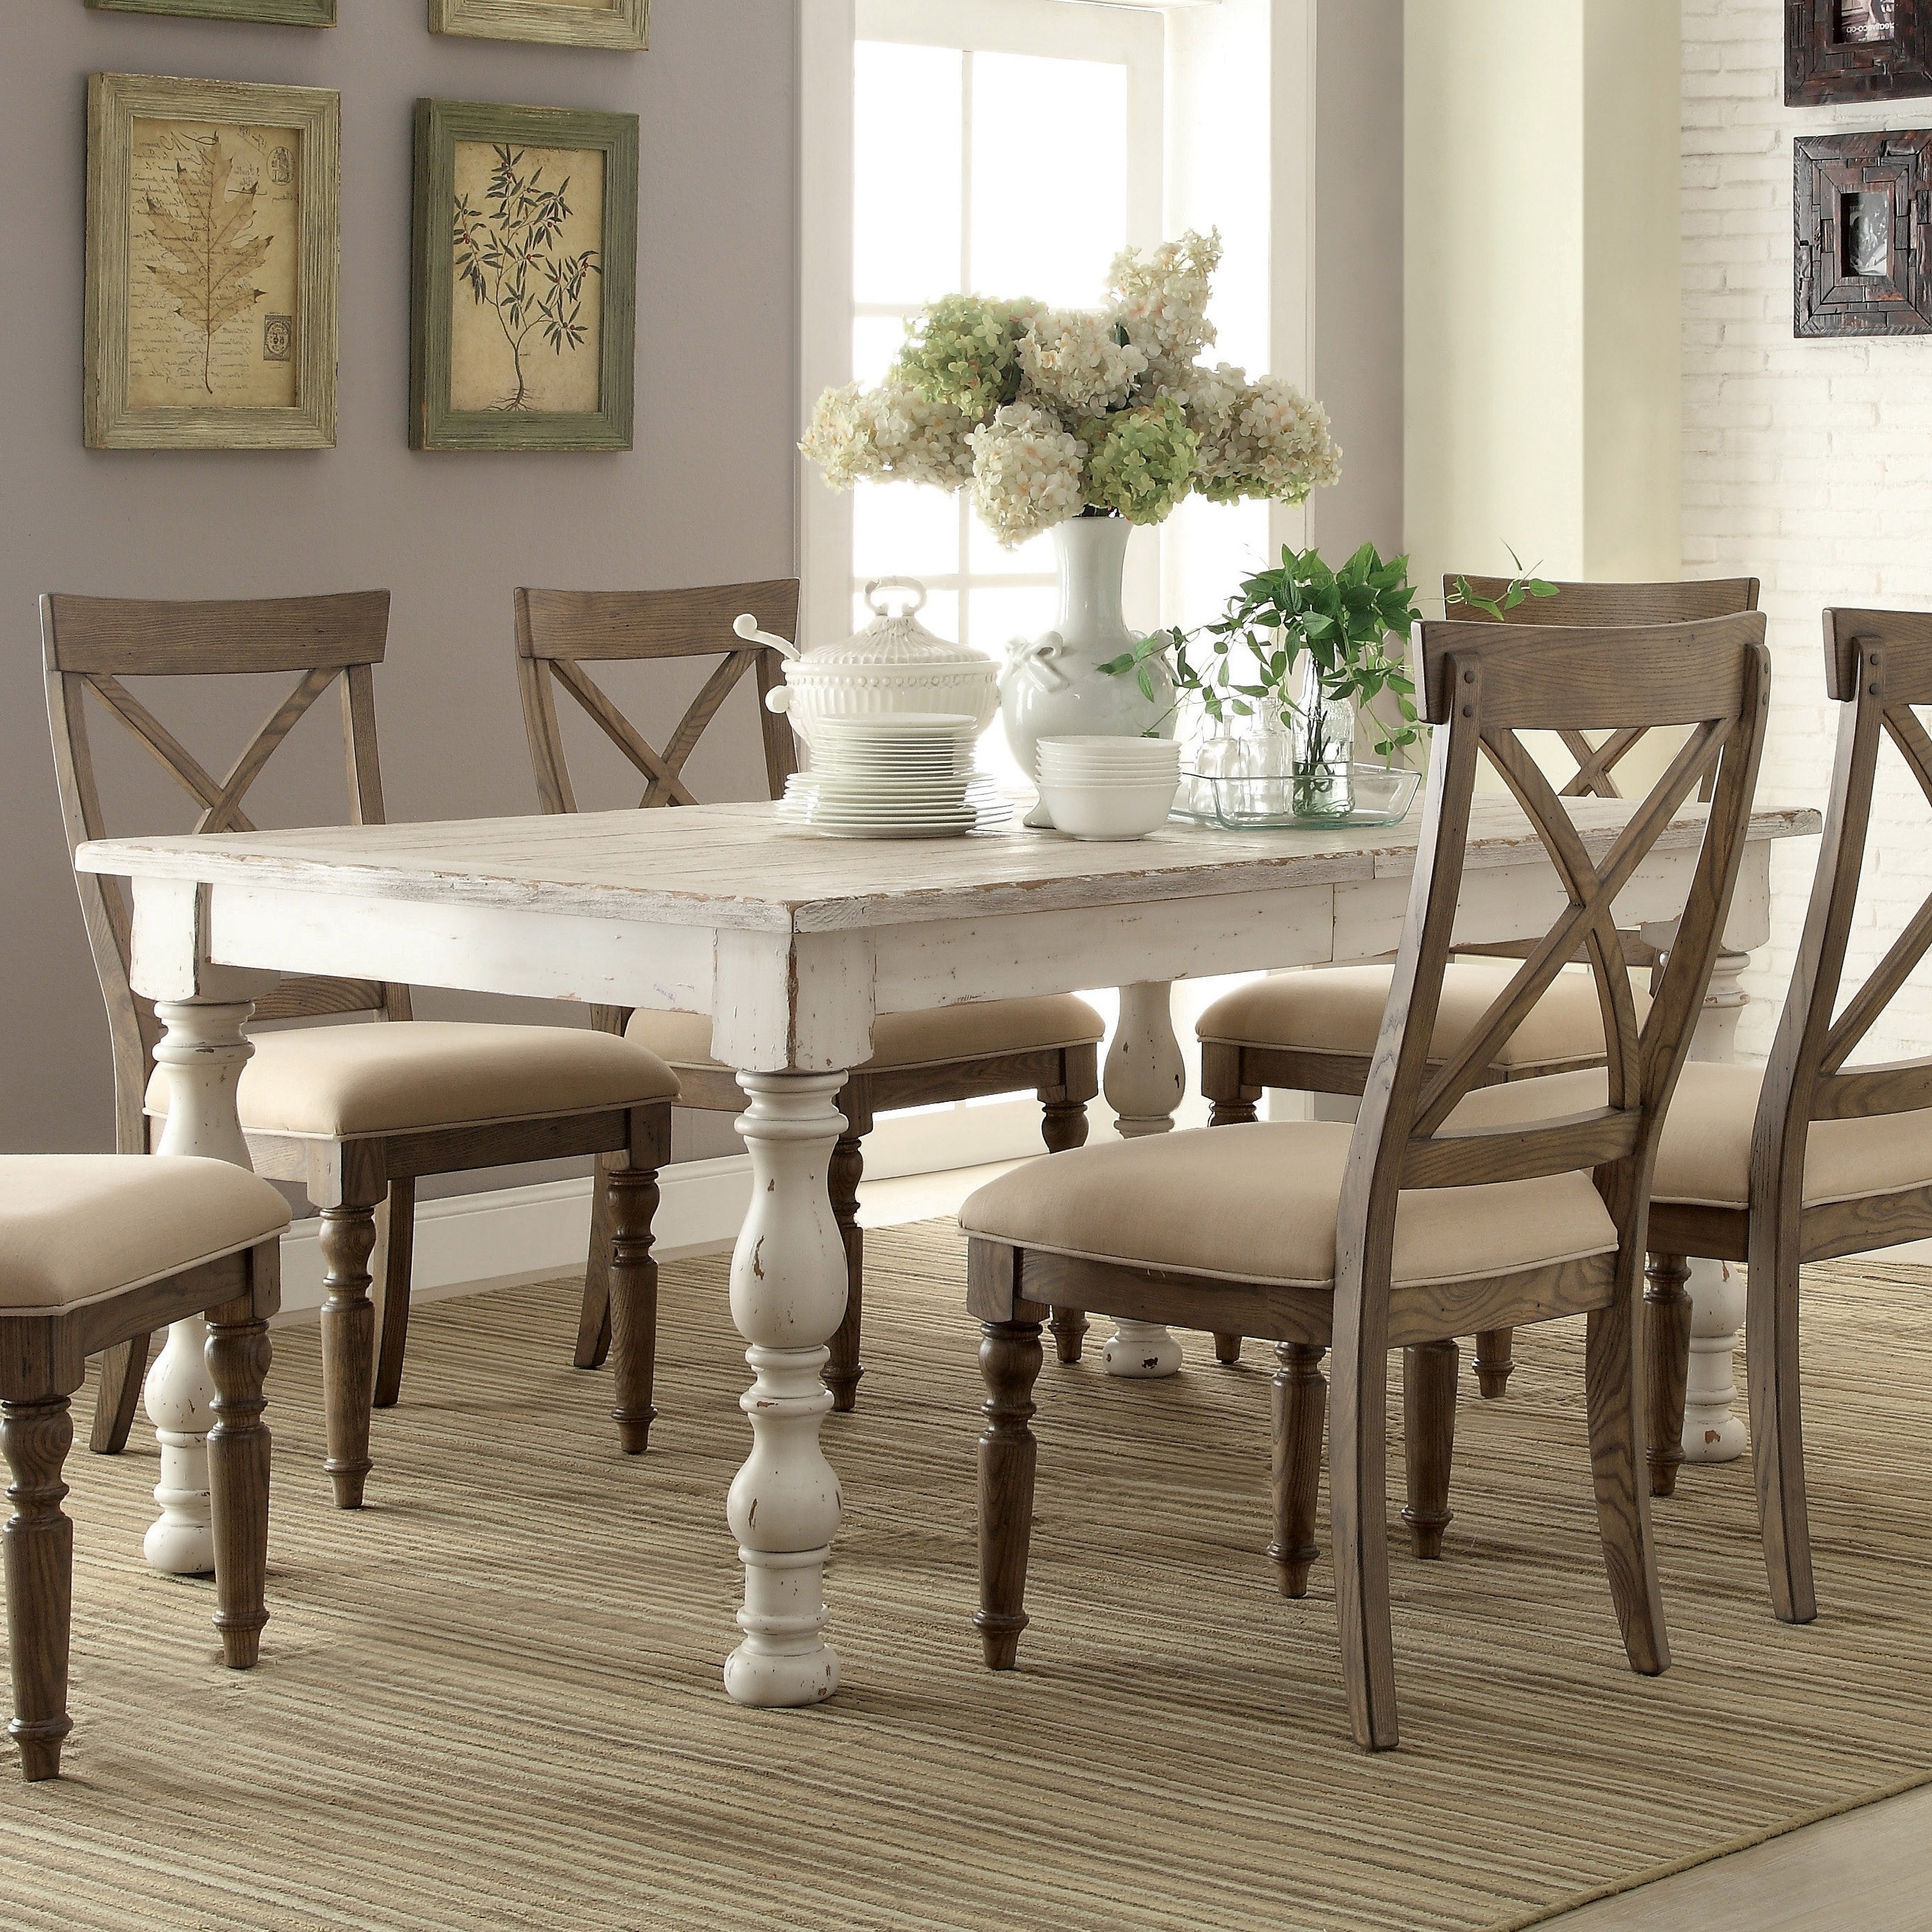 Newest Aberdeen Wood Rectangular Dining Table In Weathered Worn White With Kitchen Dining Tables And Chairs (View 7 of 25)